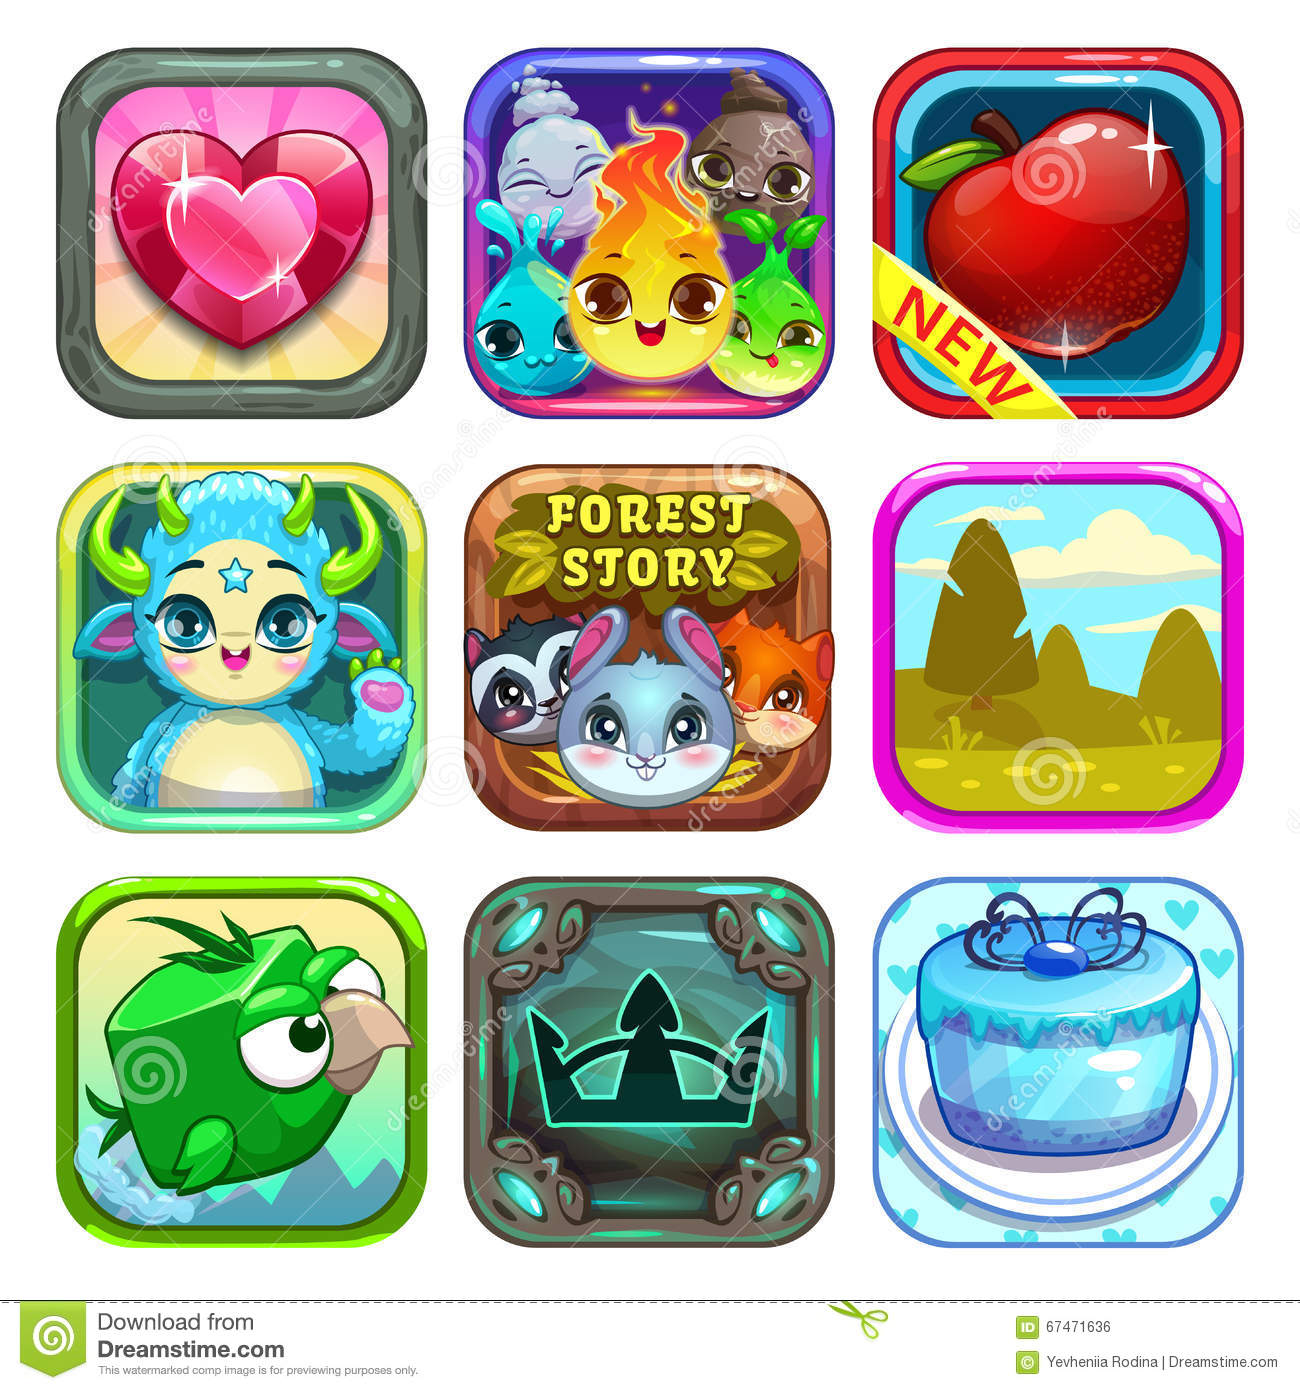 cool games on app store